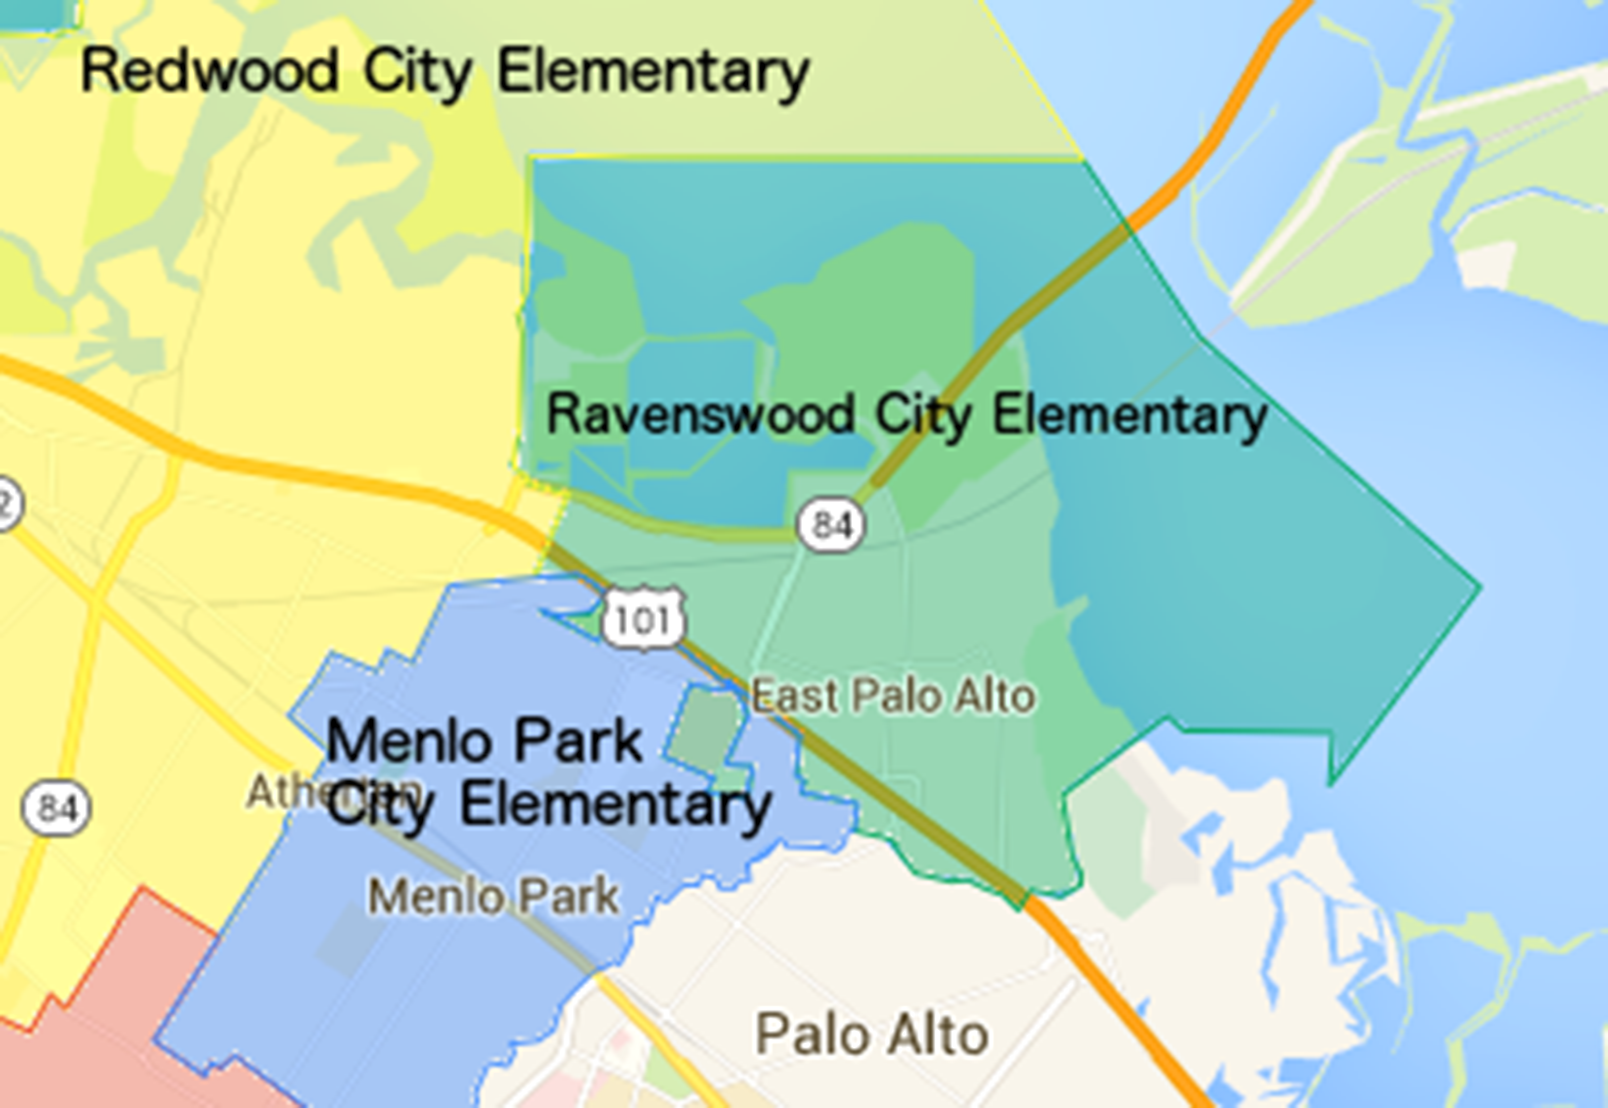 Proposal To Absorb Ravenswood Into Sequoia Draws Reaction In Schedule For Menlo Parkschool District